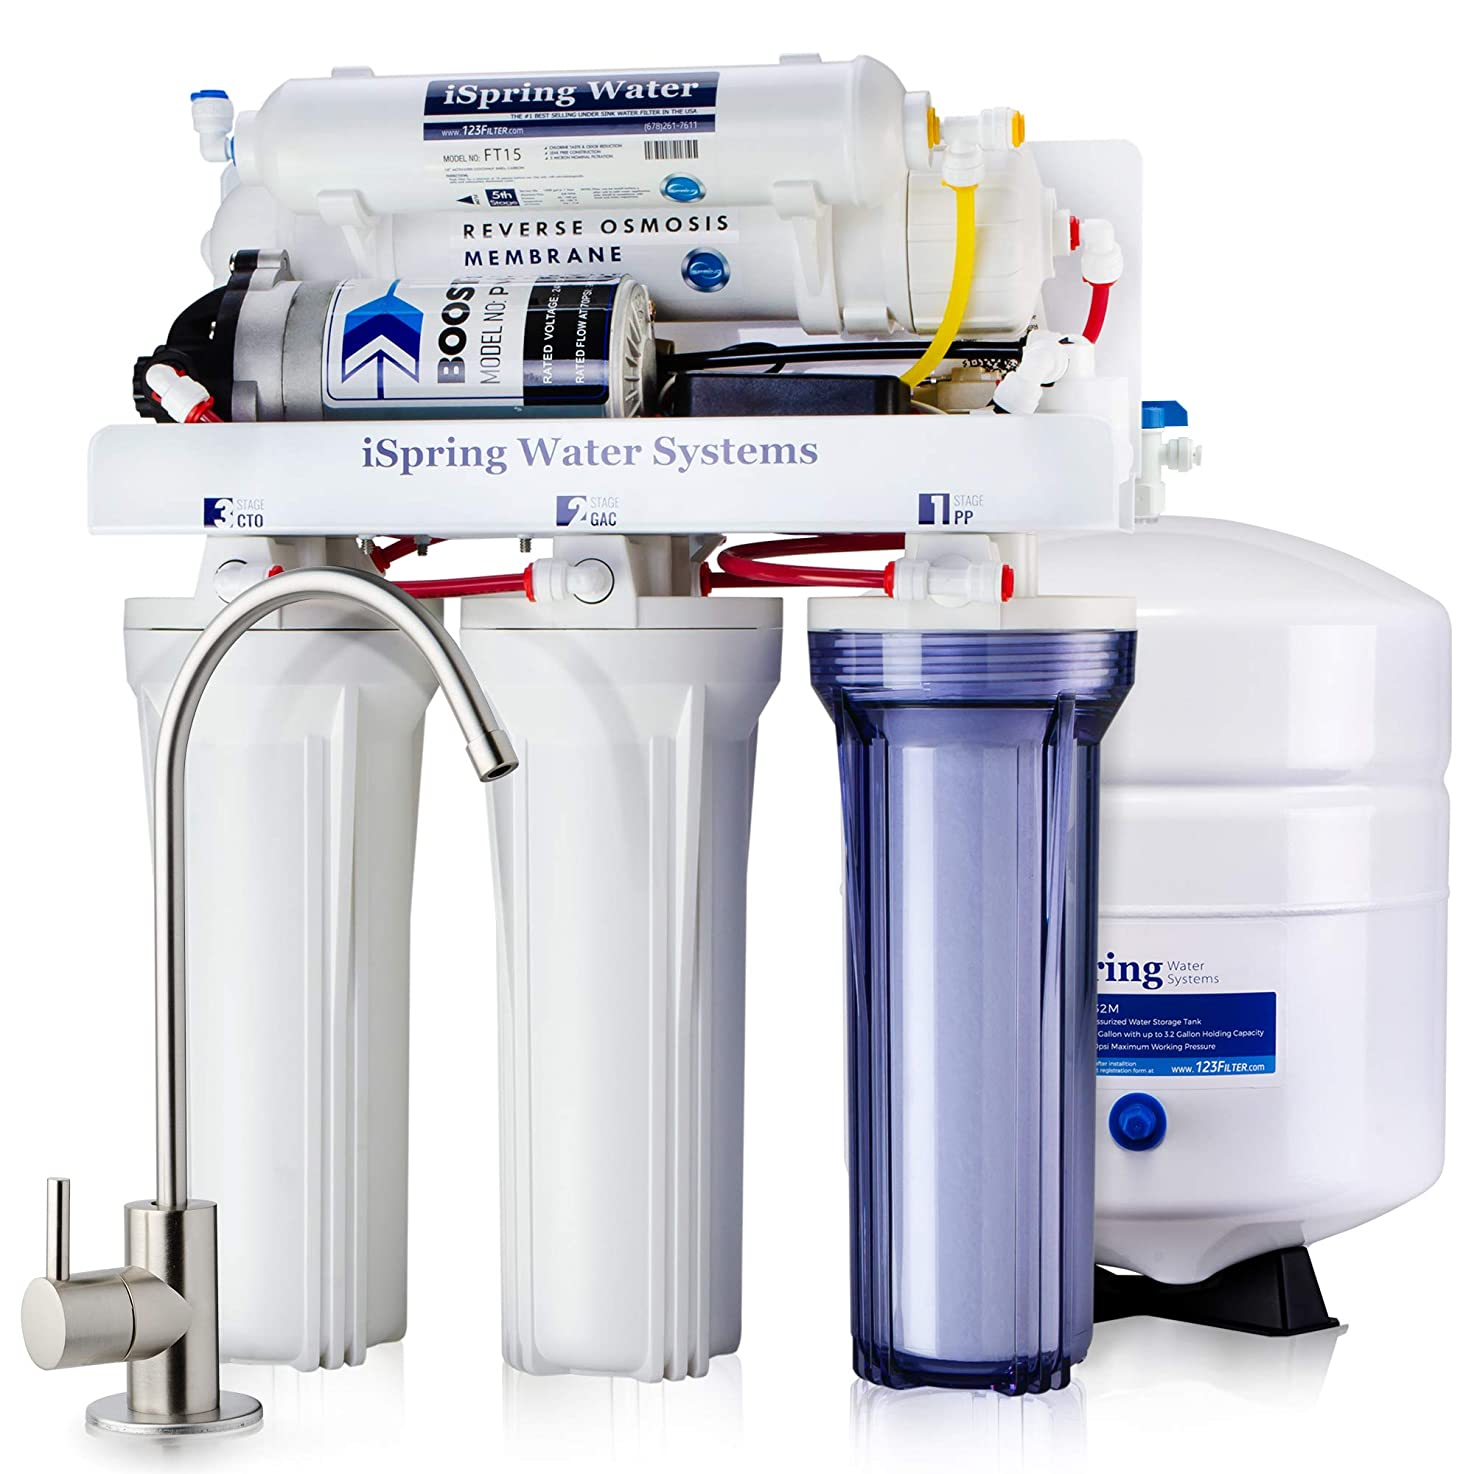 iSpring RCC100P High Capacity, Performance-boosted Under Sink 5-Stage Reverse Osmosis Drinking Water Filtration System, 100 GPD, White lgksstofqtsea8